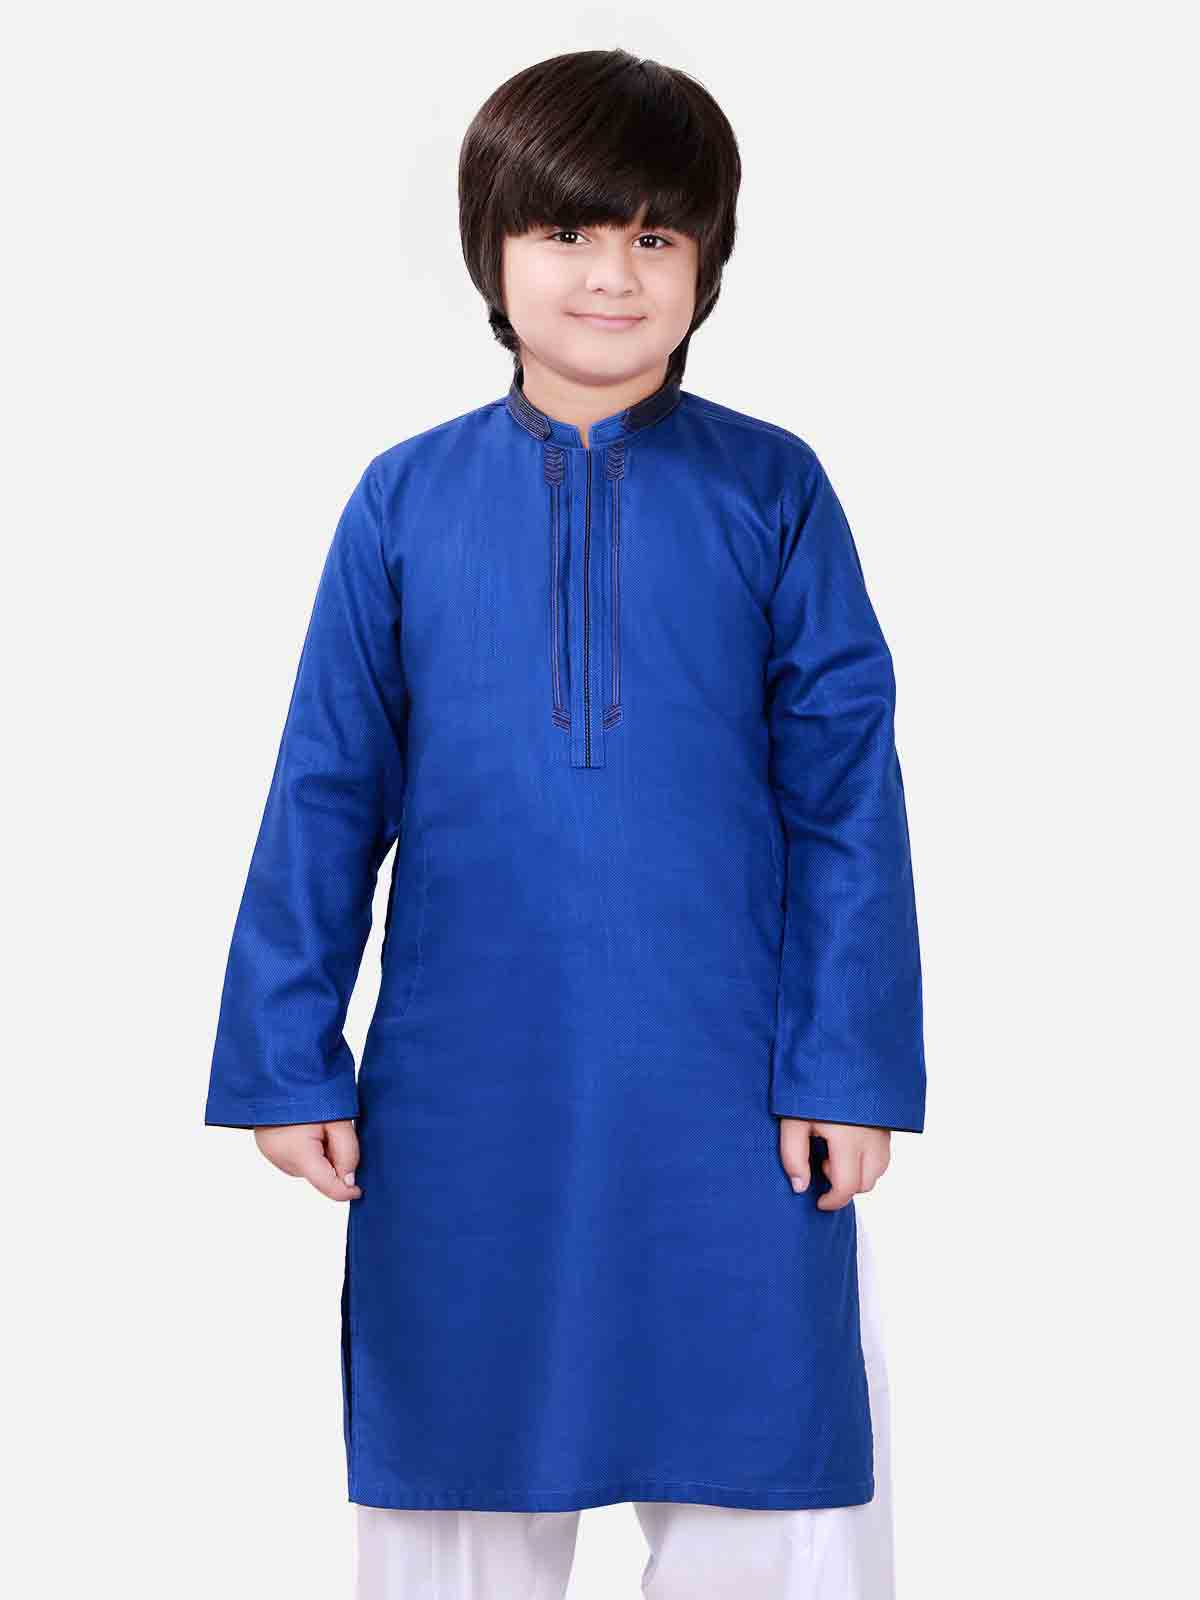 Blue kameez shalwar latest eid dresses for little boys in Pakistan 2017